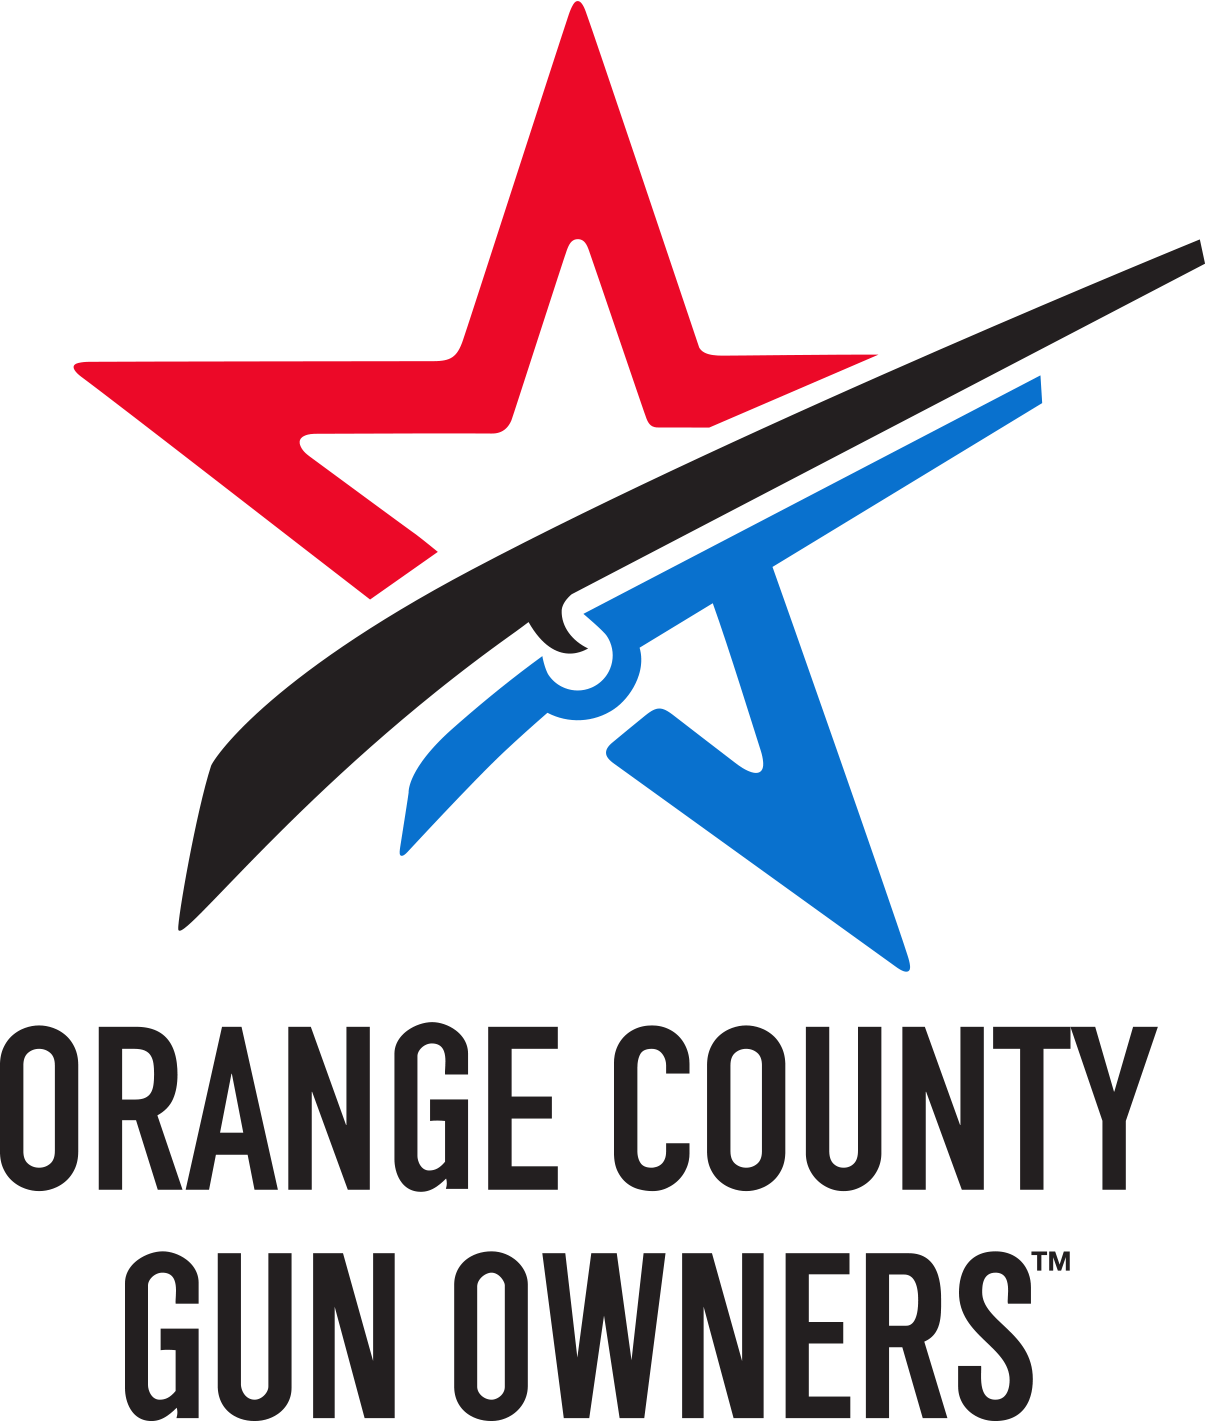 Weekly Email 9/15: September Virtual Meeting / CCW Seminar / When Does A Citizen Have A Duty To Act? / Words Have Power / Gun Onwers Radio